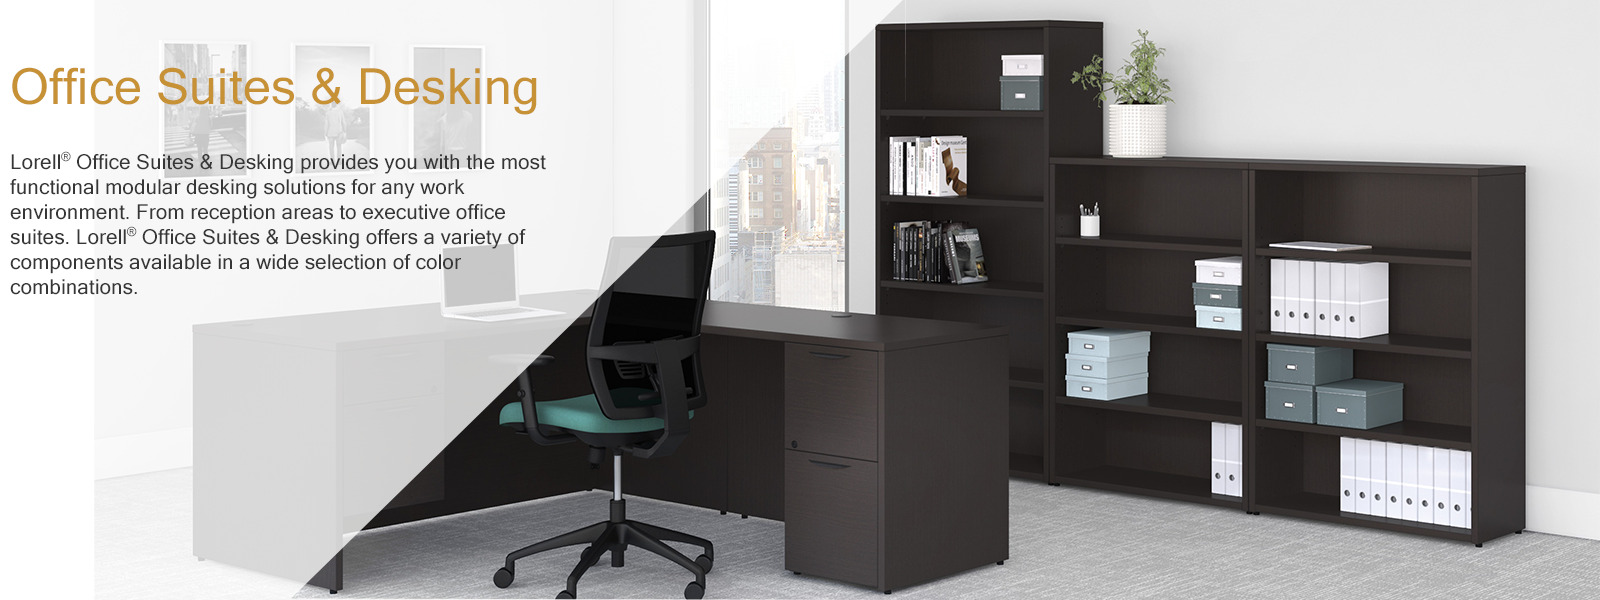 Office Suites Desking Lorell Furniture